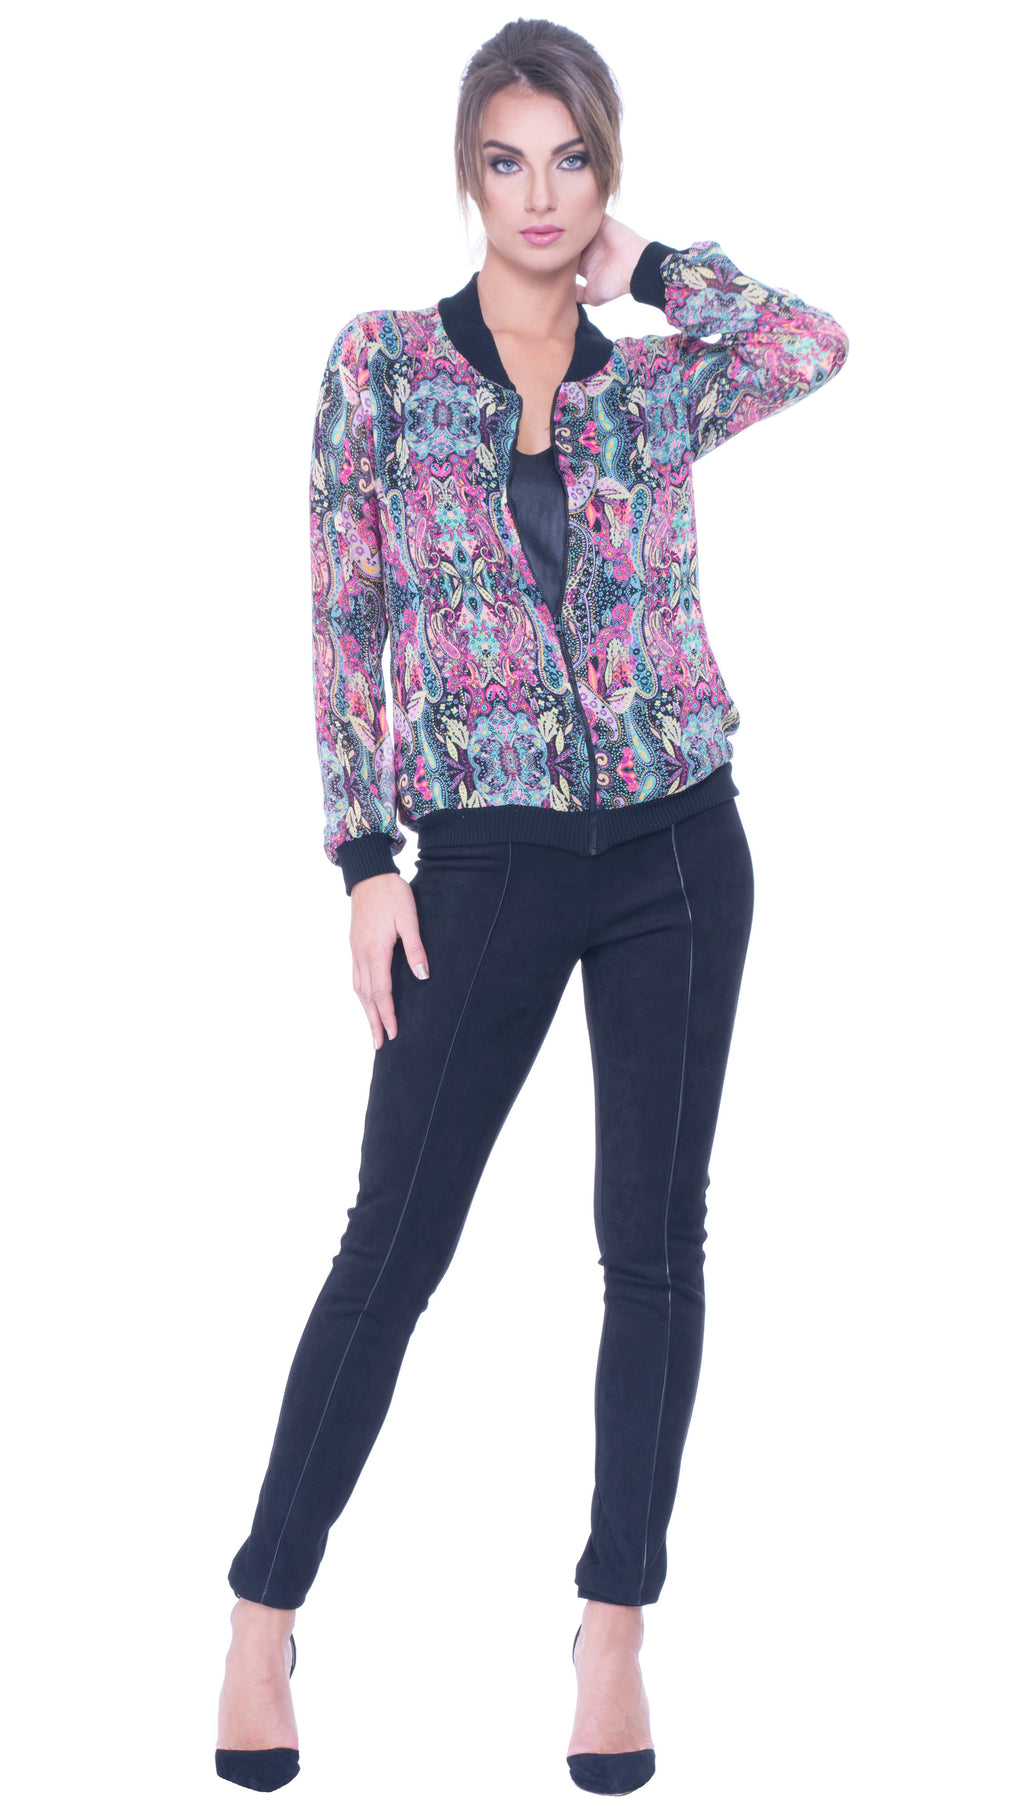 womens colorful top